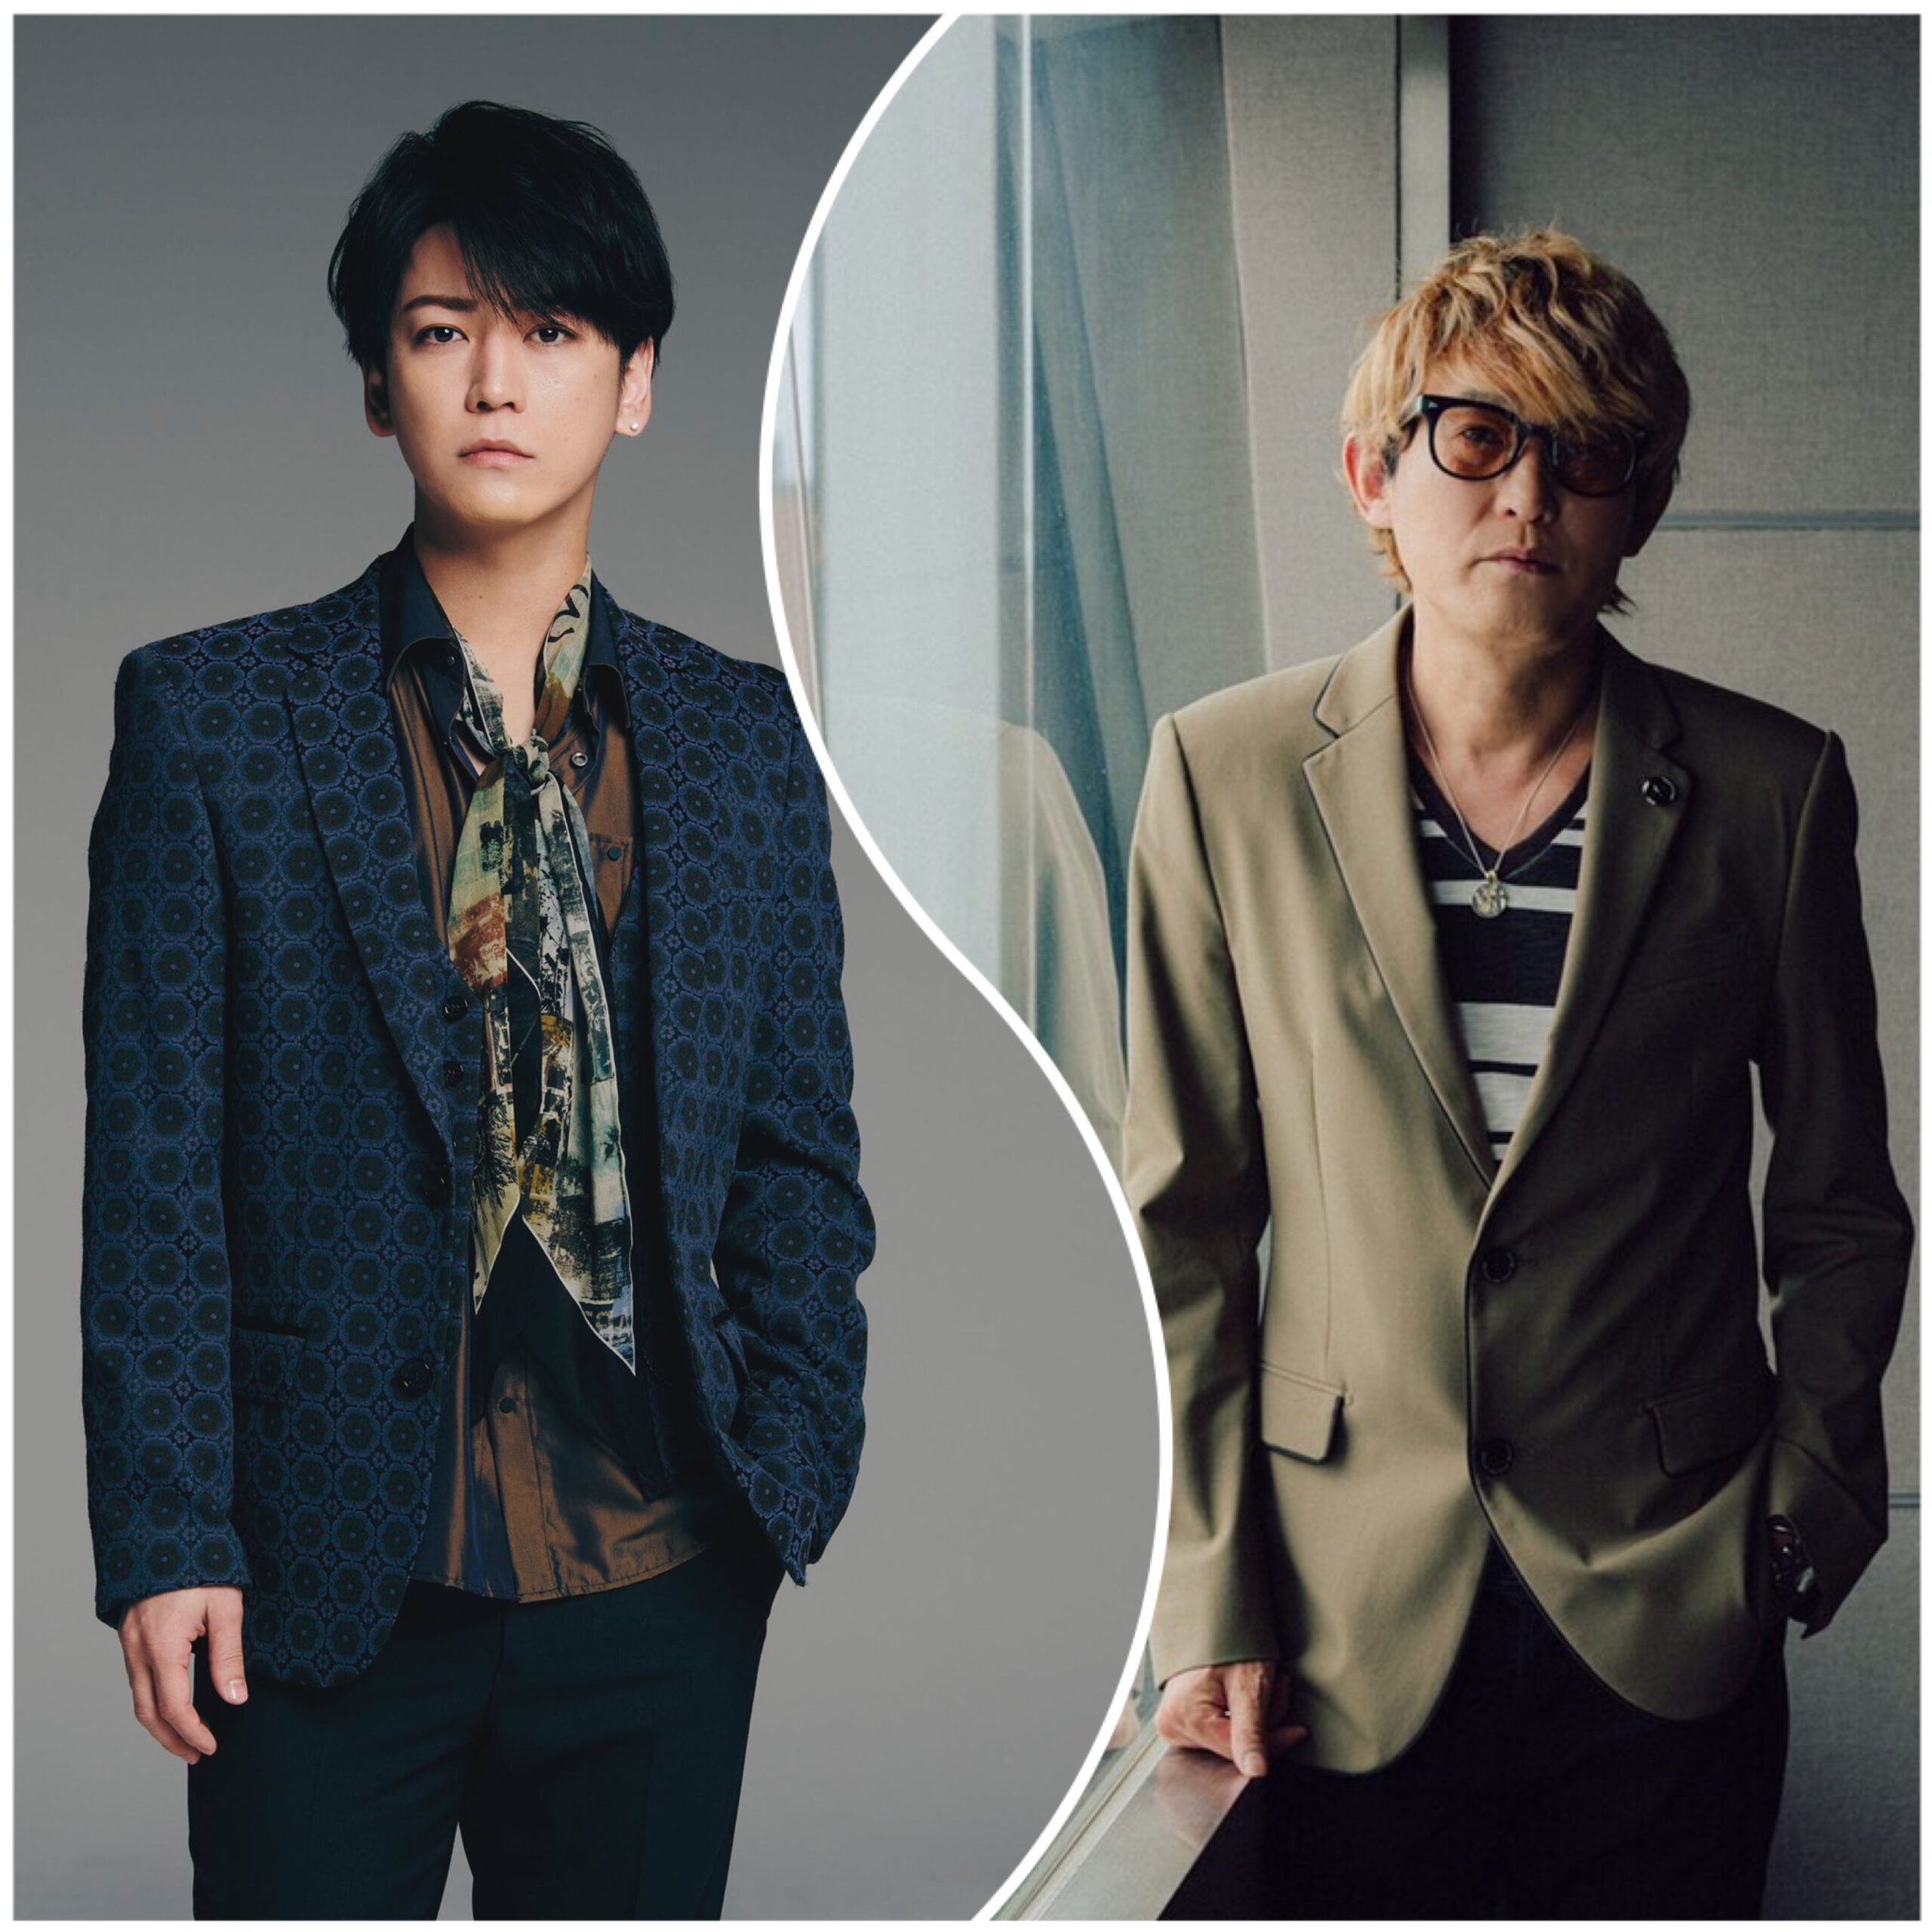 『Mercedes-Benz THE EXPERIENCE』に出演した亀梨和也とスガシカオ